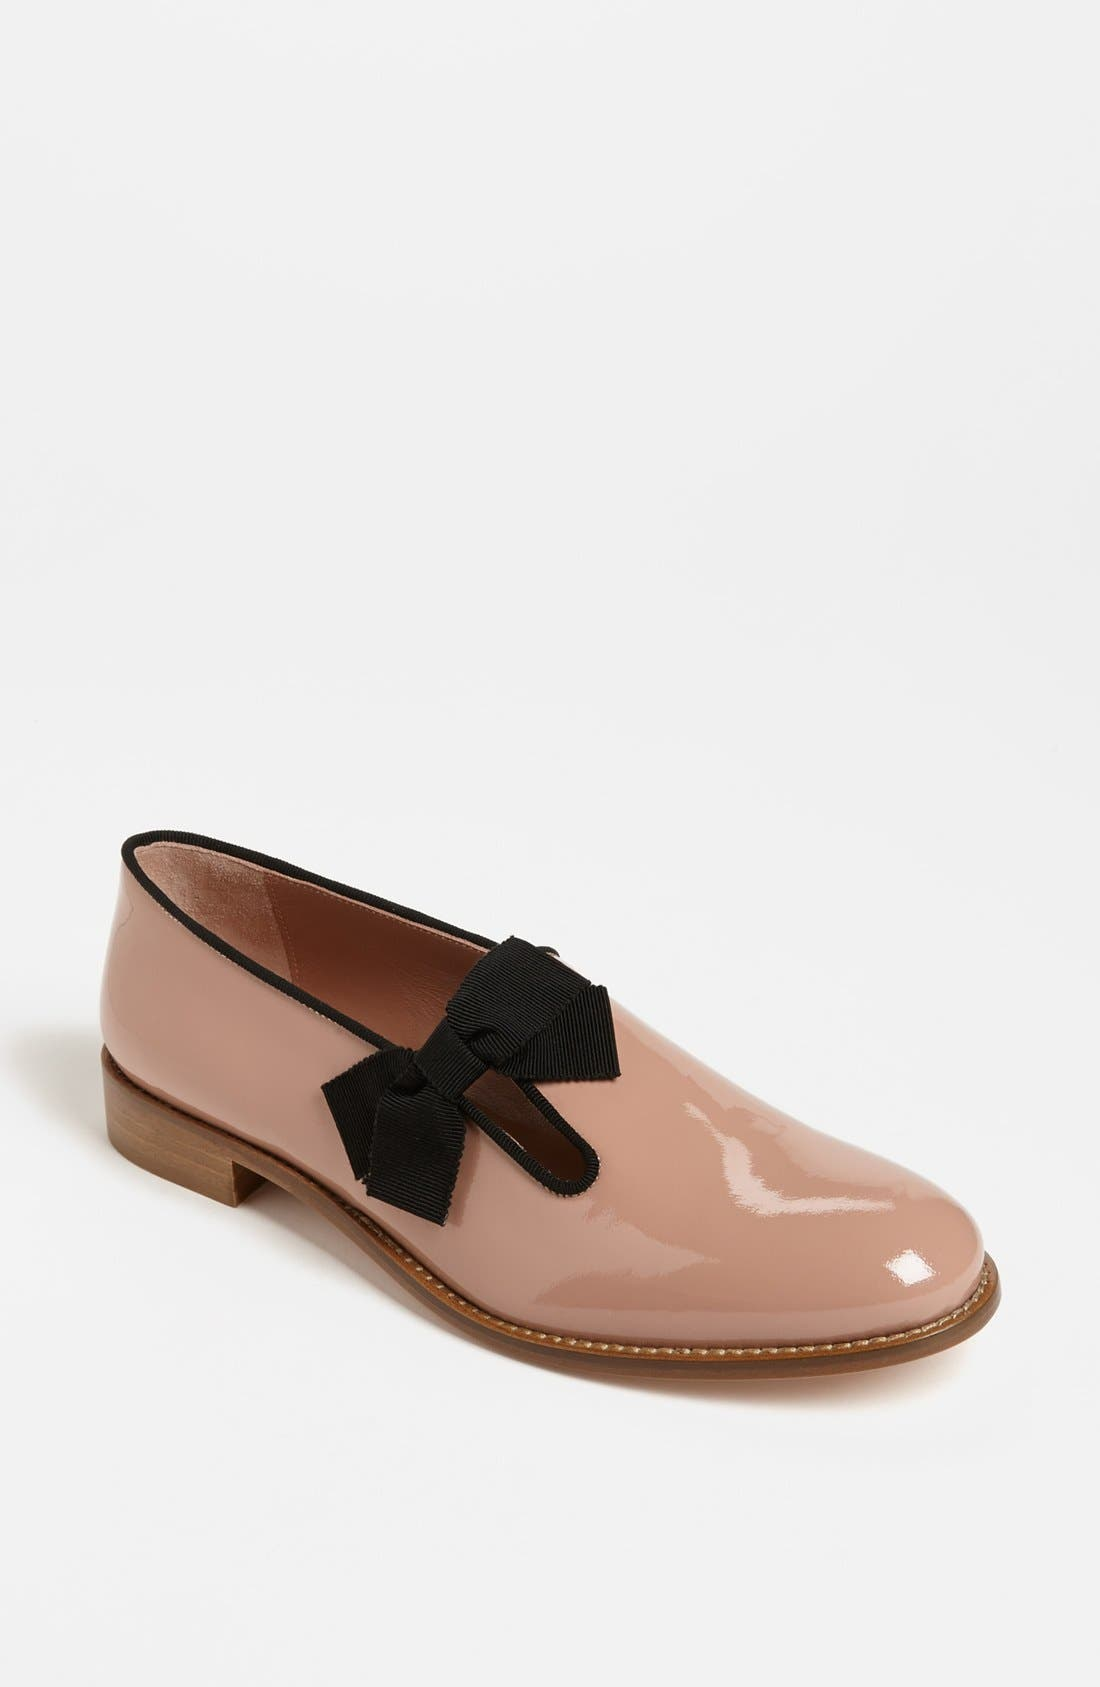 Alternate Image 1 Selected - RED Valentino Patent Leather Tuxedo Loafer